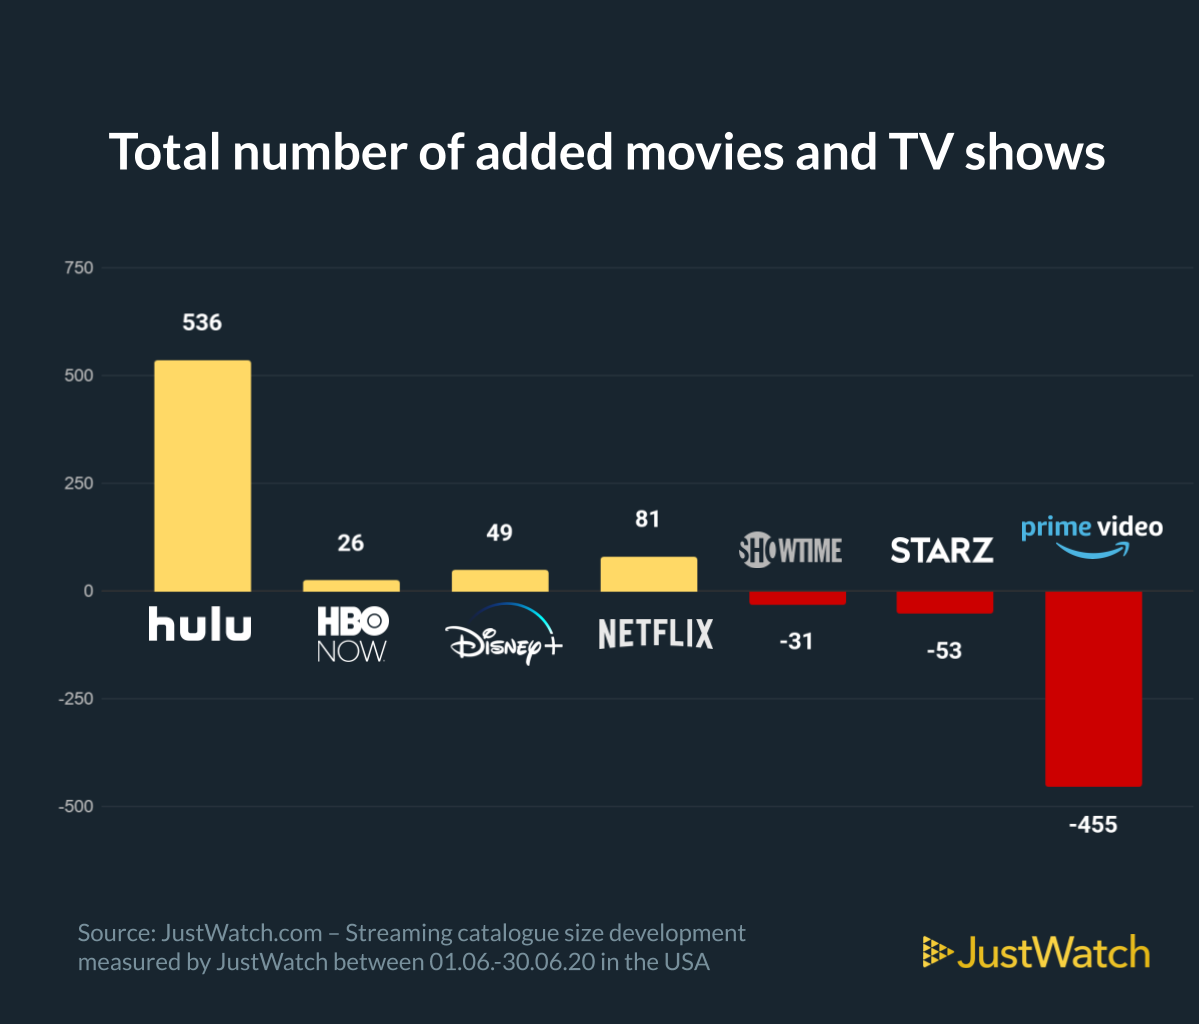 A graph showing the total number of added movies and TV shows in the US Market with data from JustWatch for June 2020